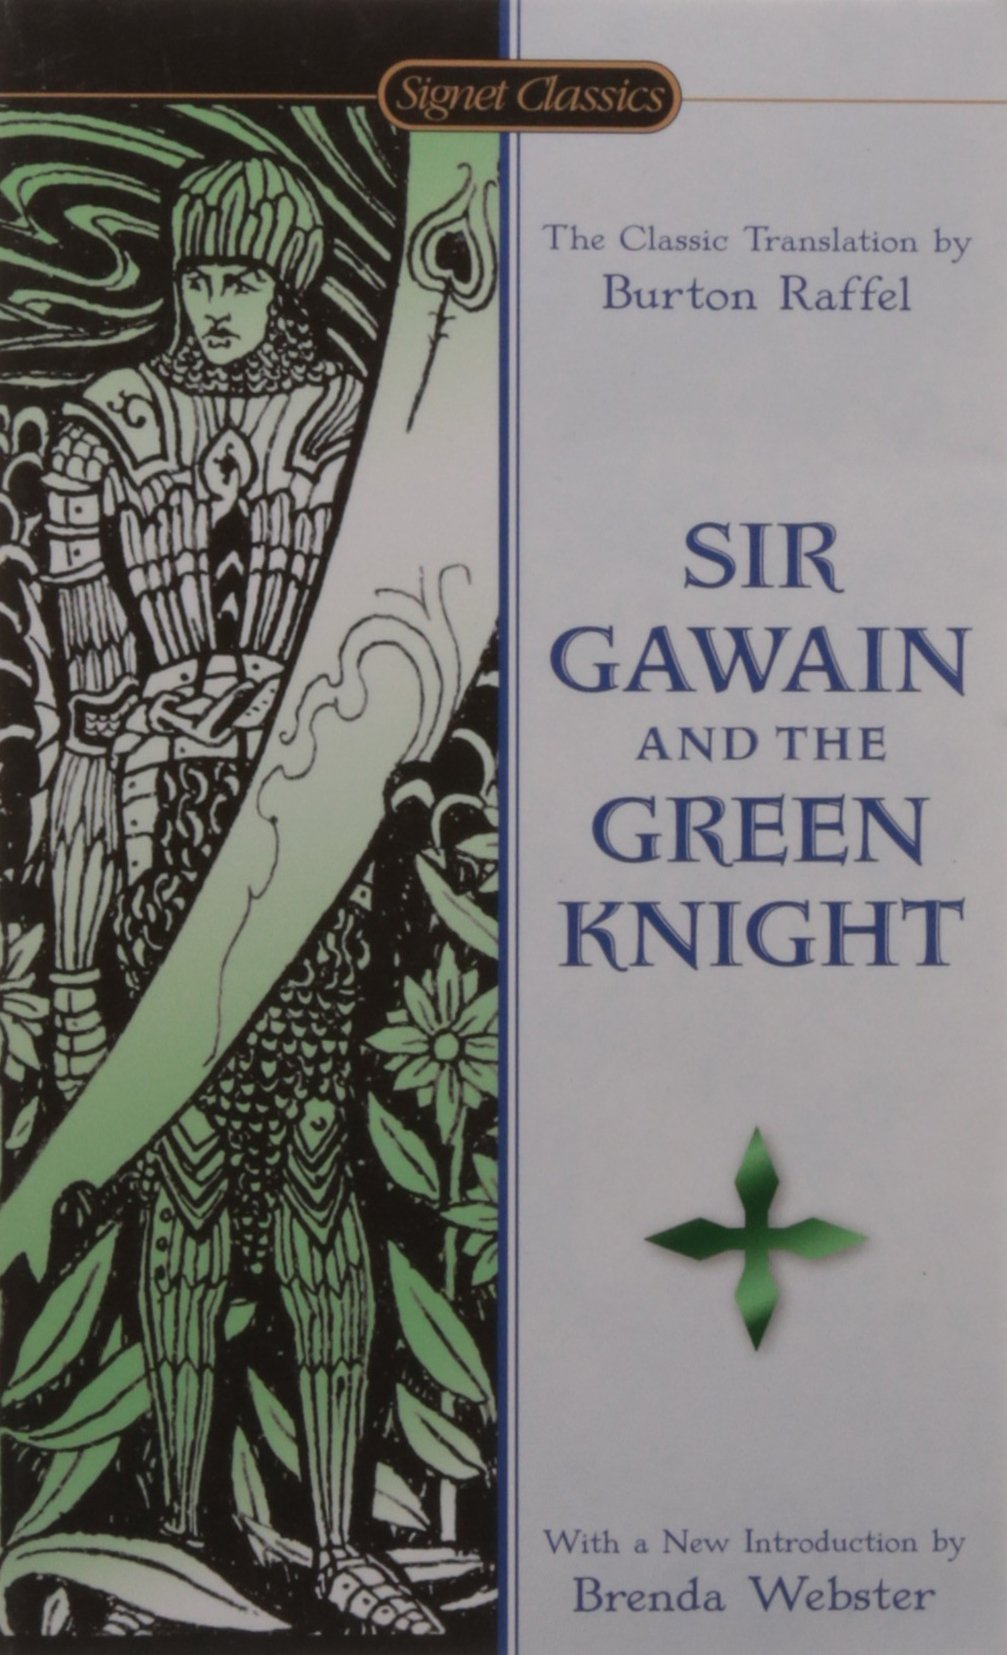 Sir gawain and the green knight signet classics burton raffel sir gawain and the green knight signet classics burton raffel brenda webster neil d isaacs 9780451531193 amazon books fandeluxe Image collections